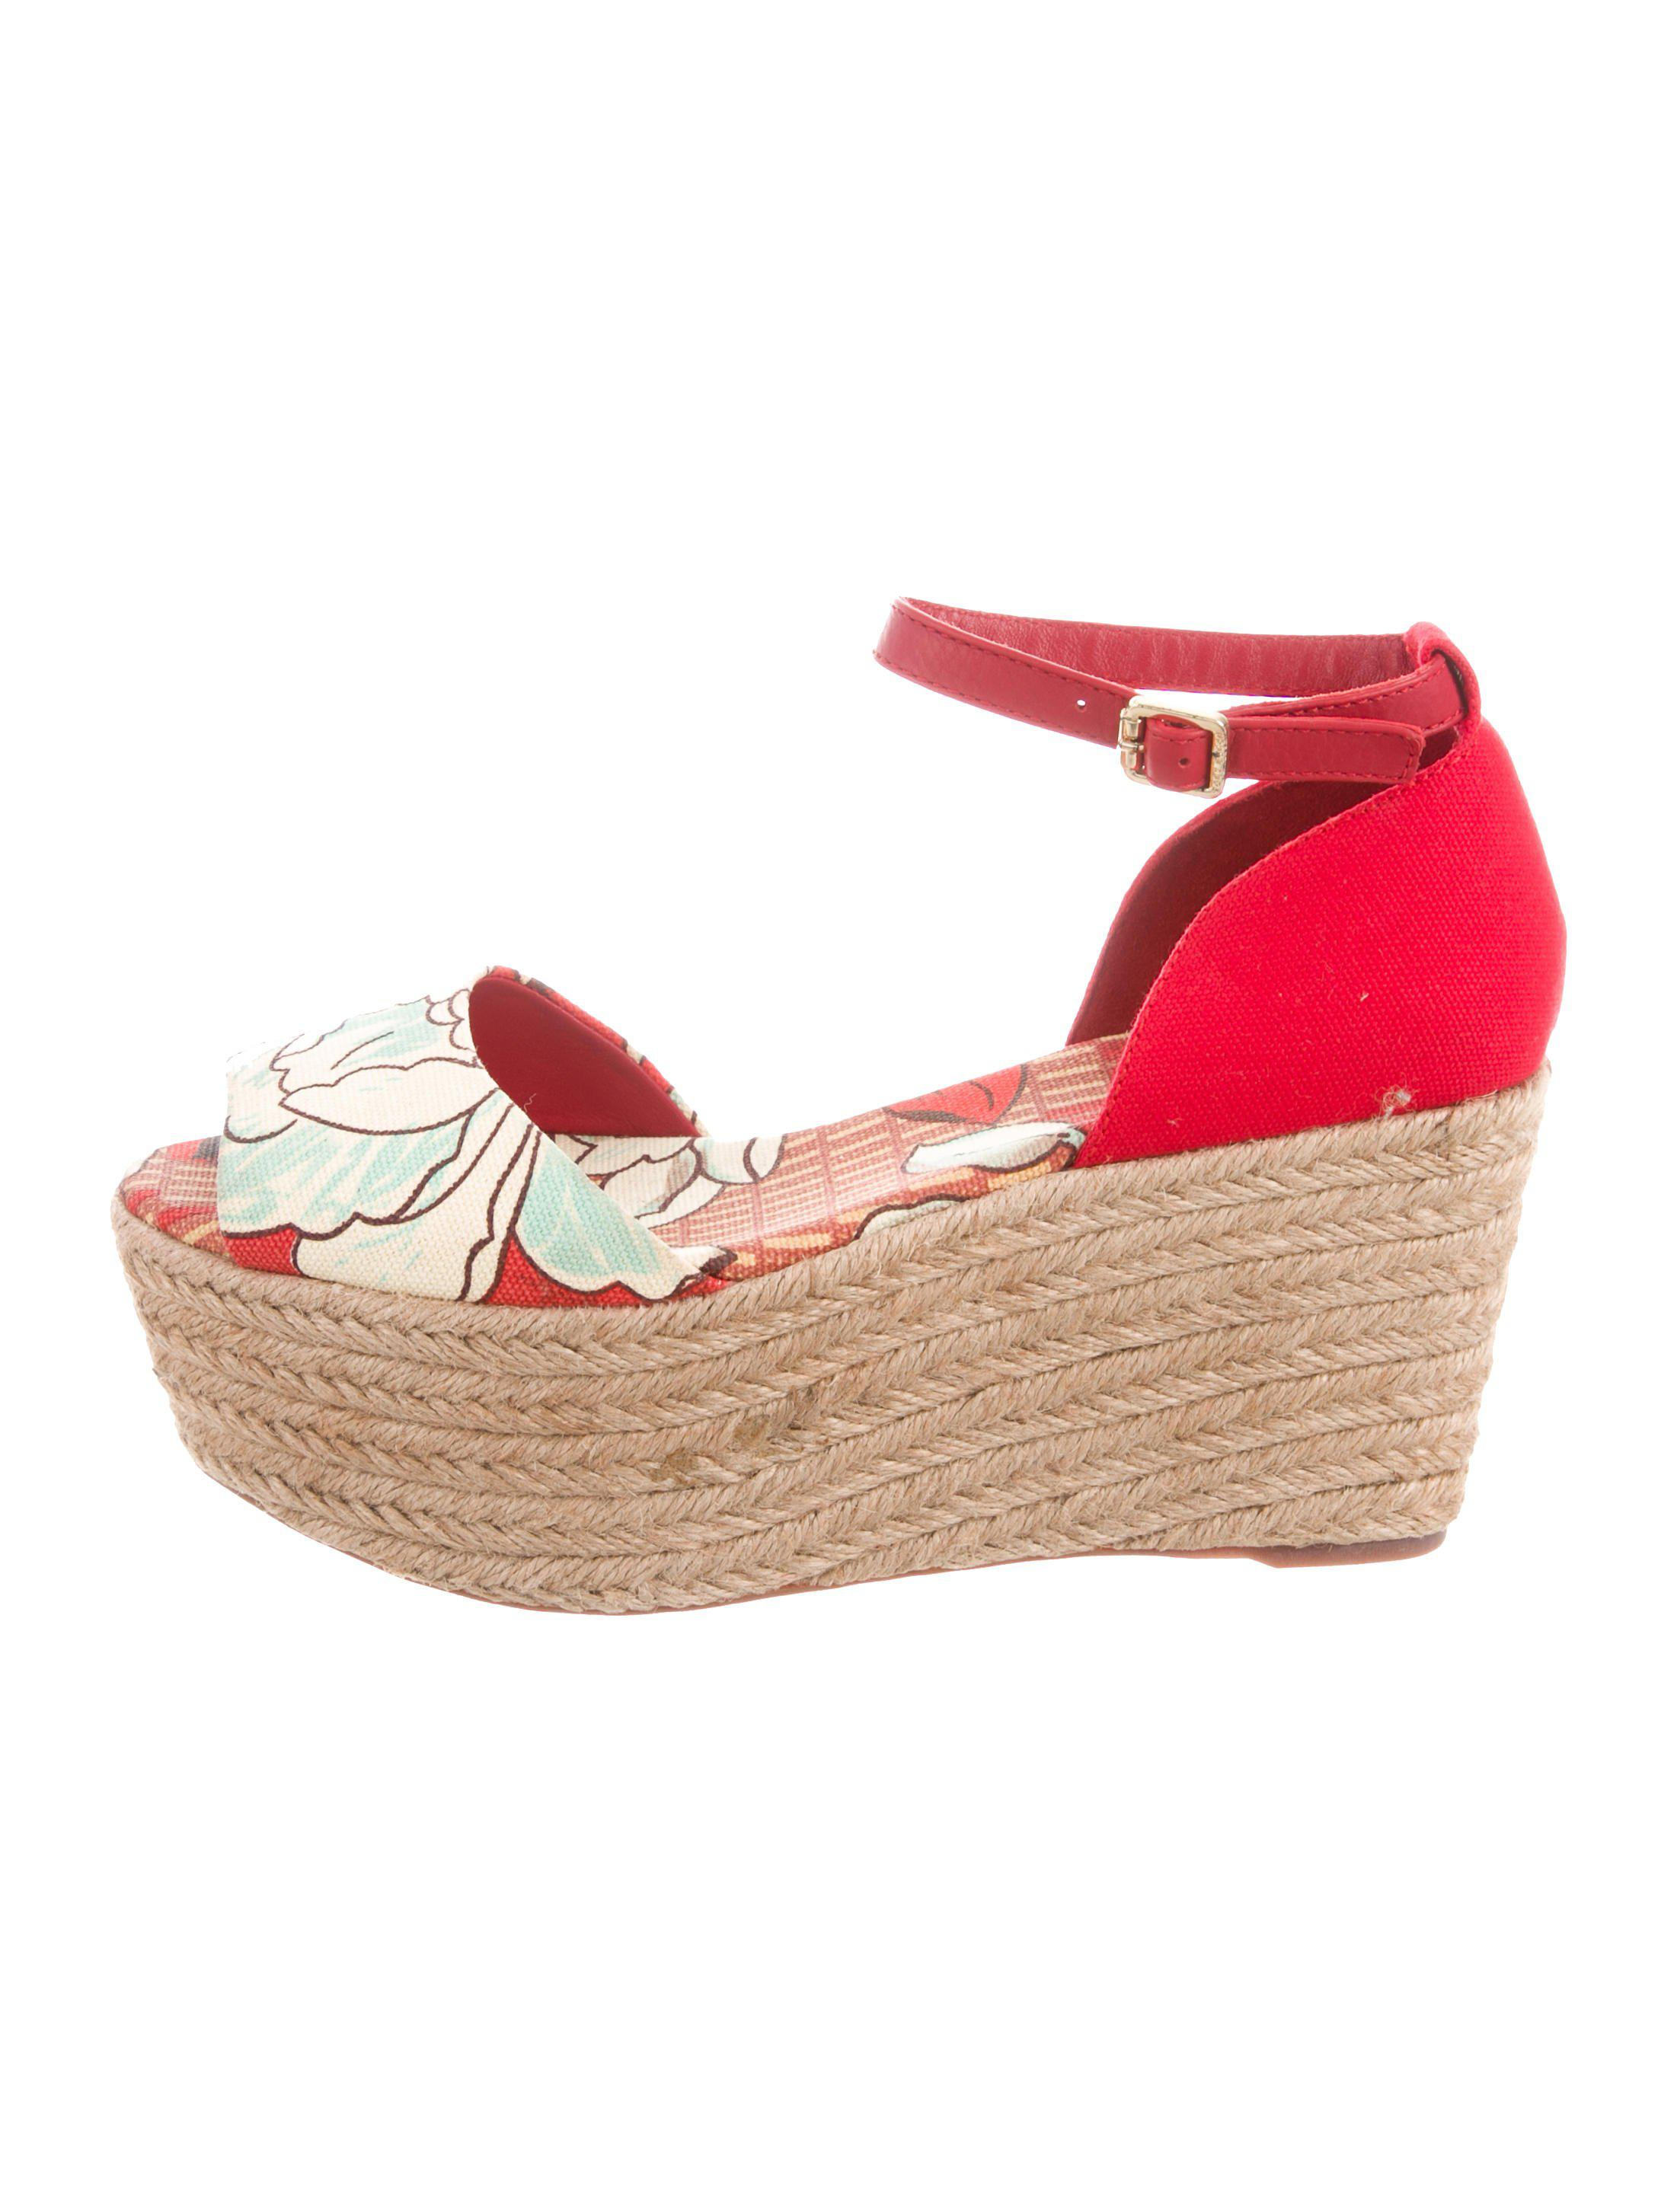 7935a1ea15 Lyst - Tory Burch Canvas Espadrille Wedges in Red